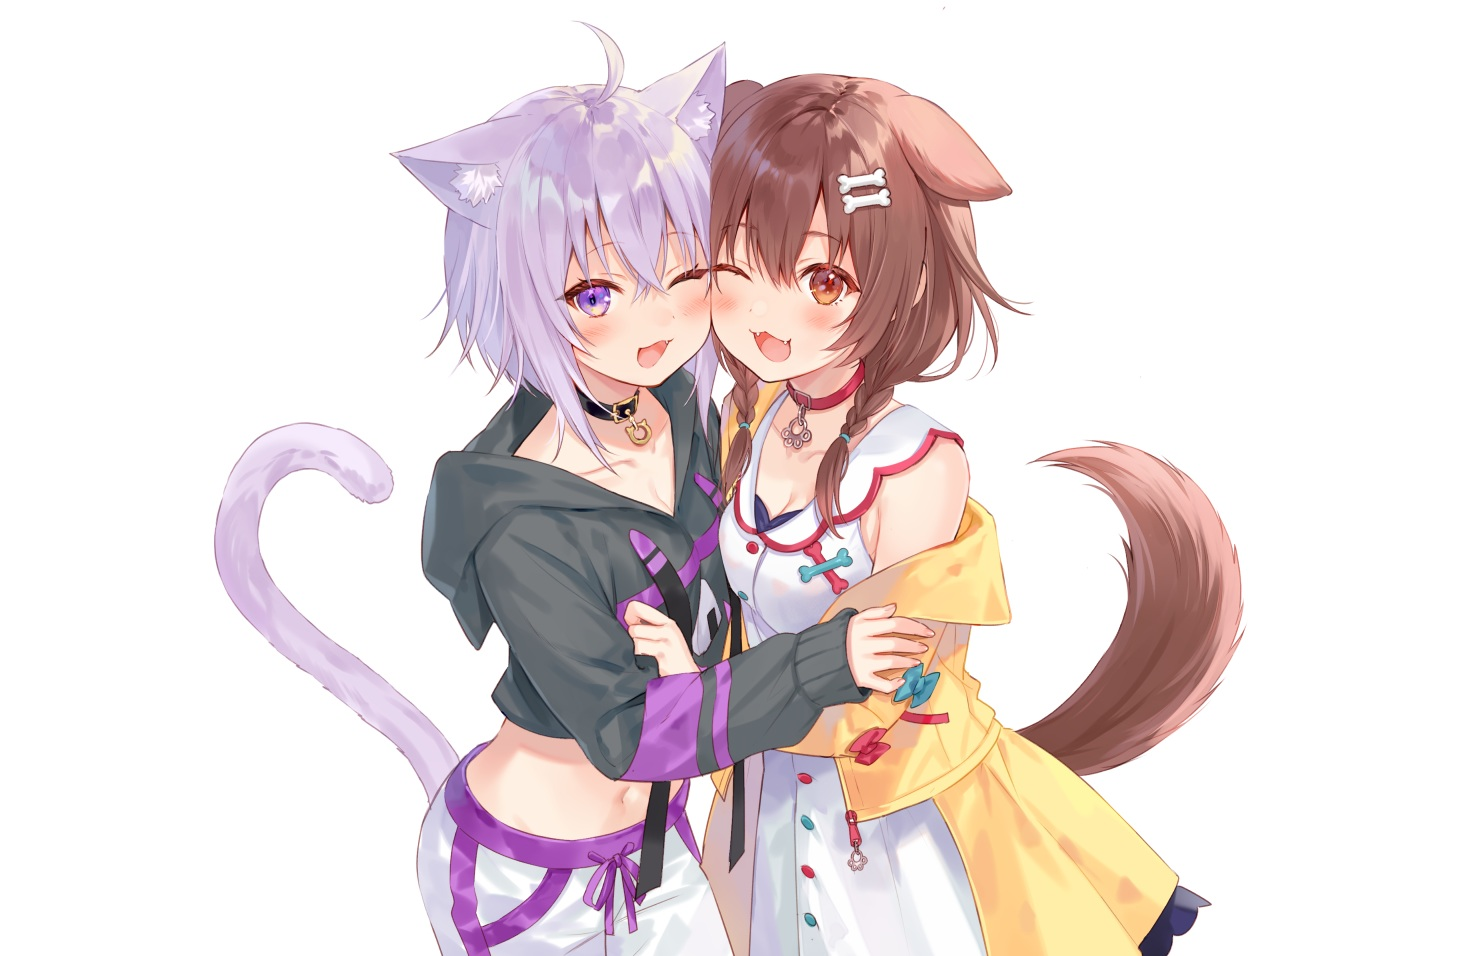 2girls animal_ears blush bow braids brown_eyes brown_hair catgirl cat_smile collar doggirl dress fang fukahire_sanba hololive hoodie hug inugami_korone navel nekomata_okayu purple_eyes purple_hair short_hair tail twintails white wink